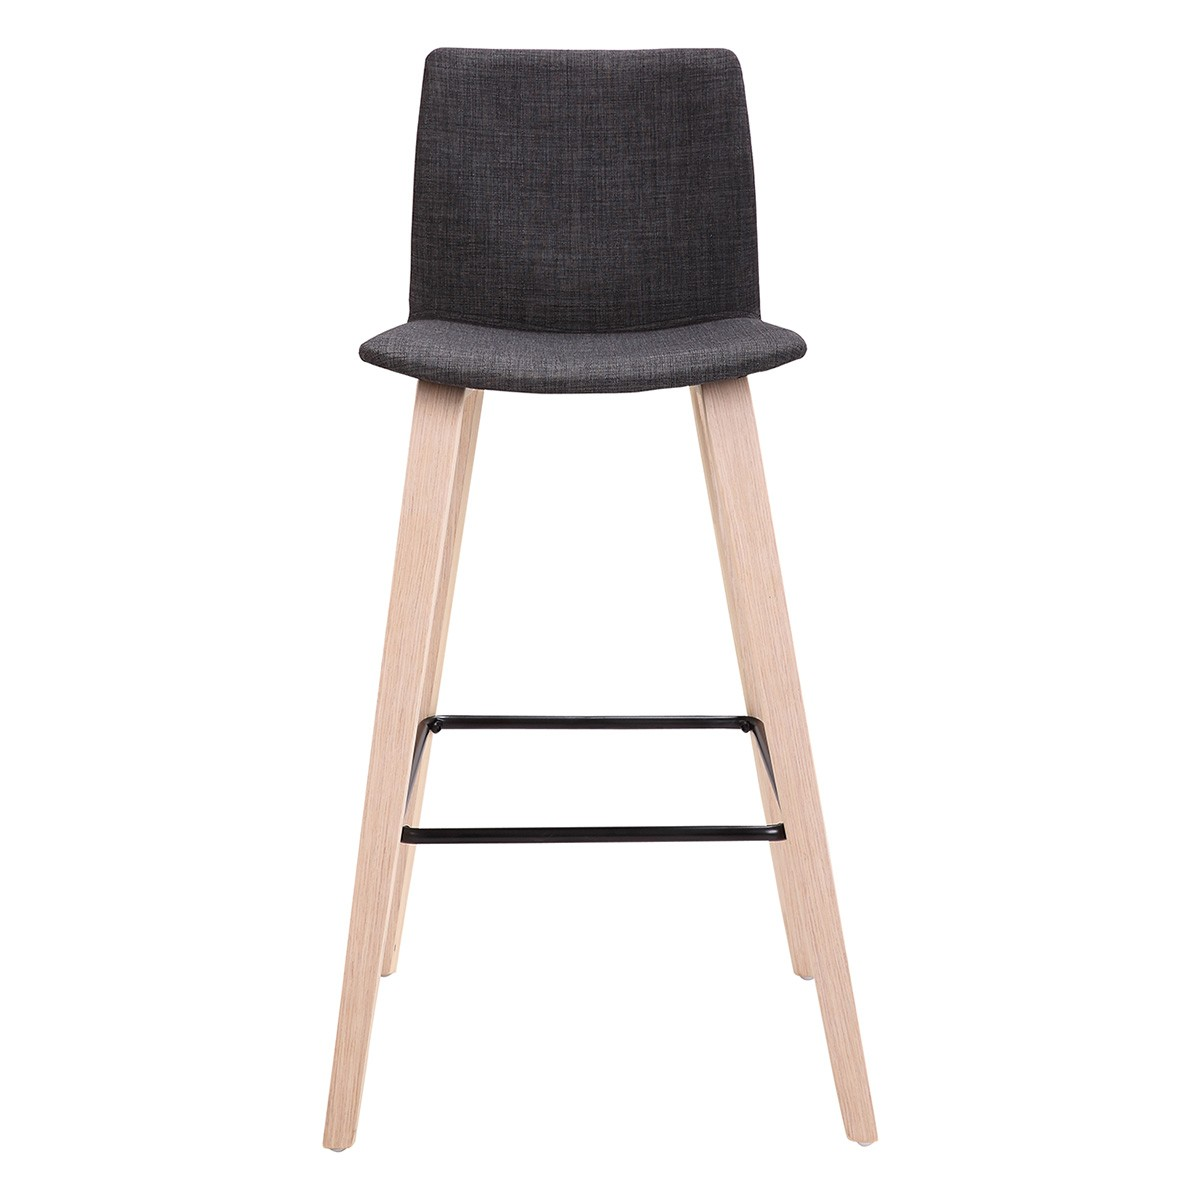 Straight Shooter Wooden Counter Stool with Fabric Seat